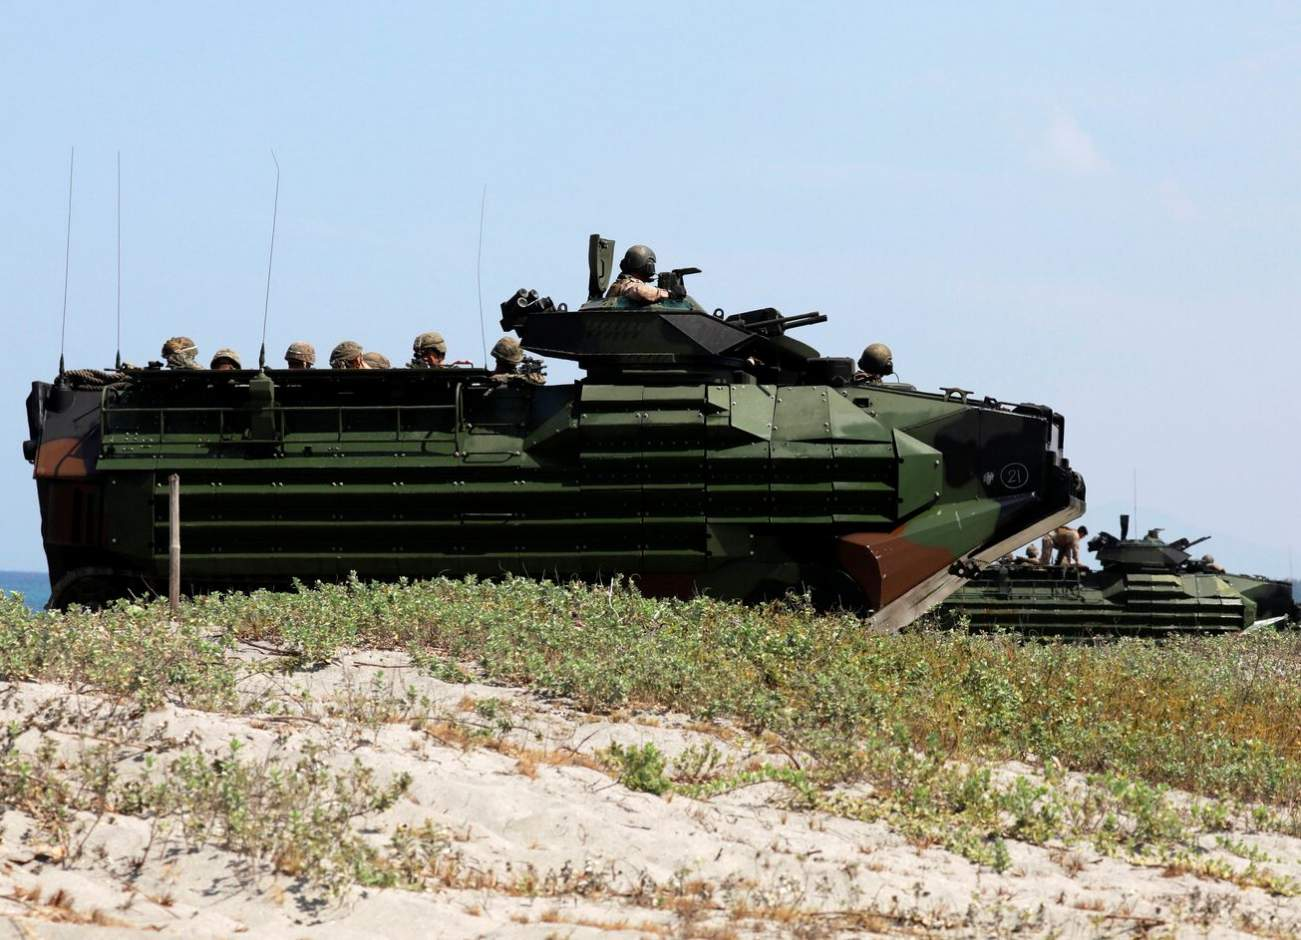 Meet the 29-Ton AAV7: The Marines' New Armored Vehicle That Can Swim